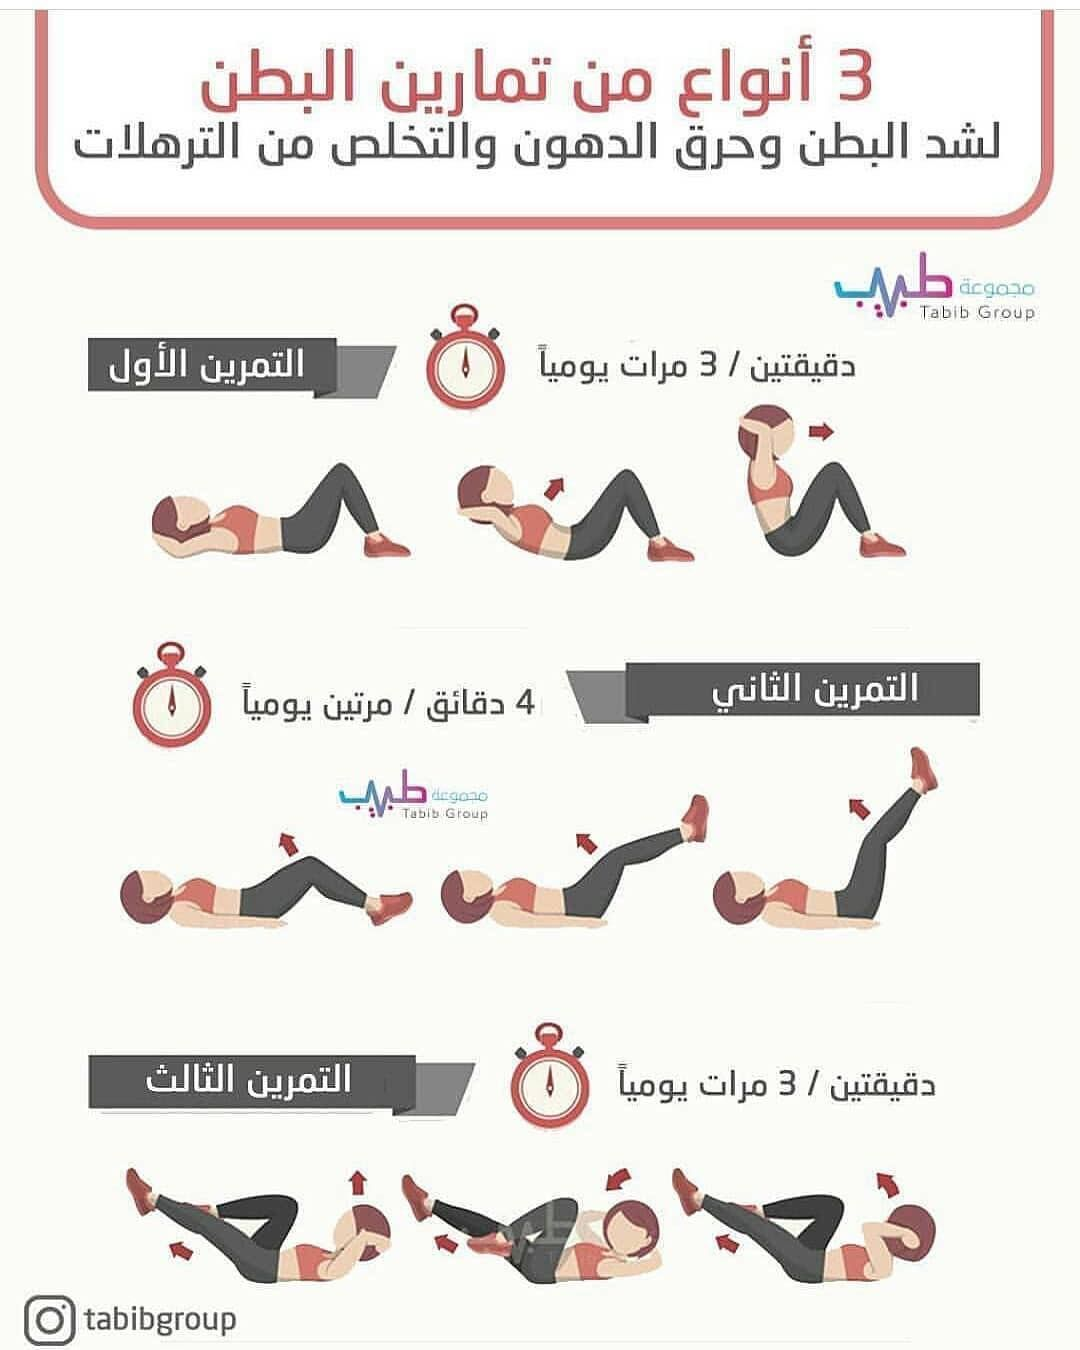 حياة صحية On Instagram ثلاث أنواع من تمارين البطن Diet Healthy Health And Fitness Expo Health Fitness Nutrition Health Insurance Companies